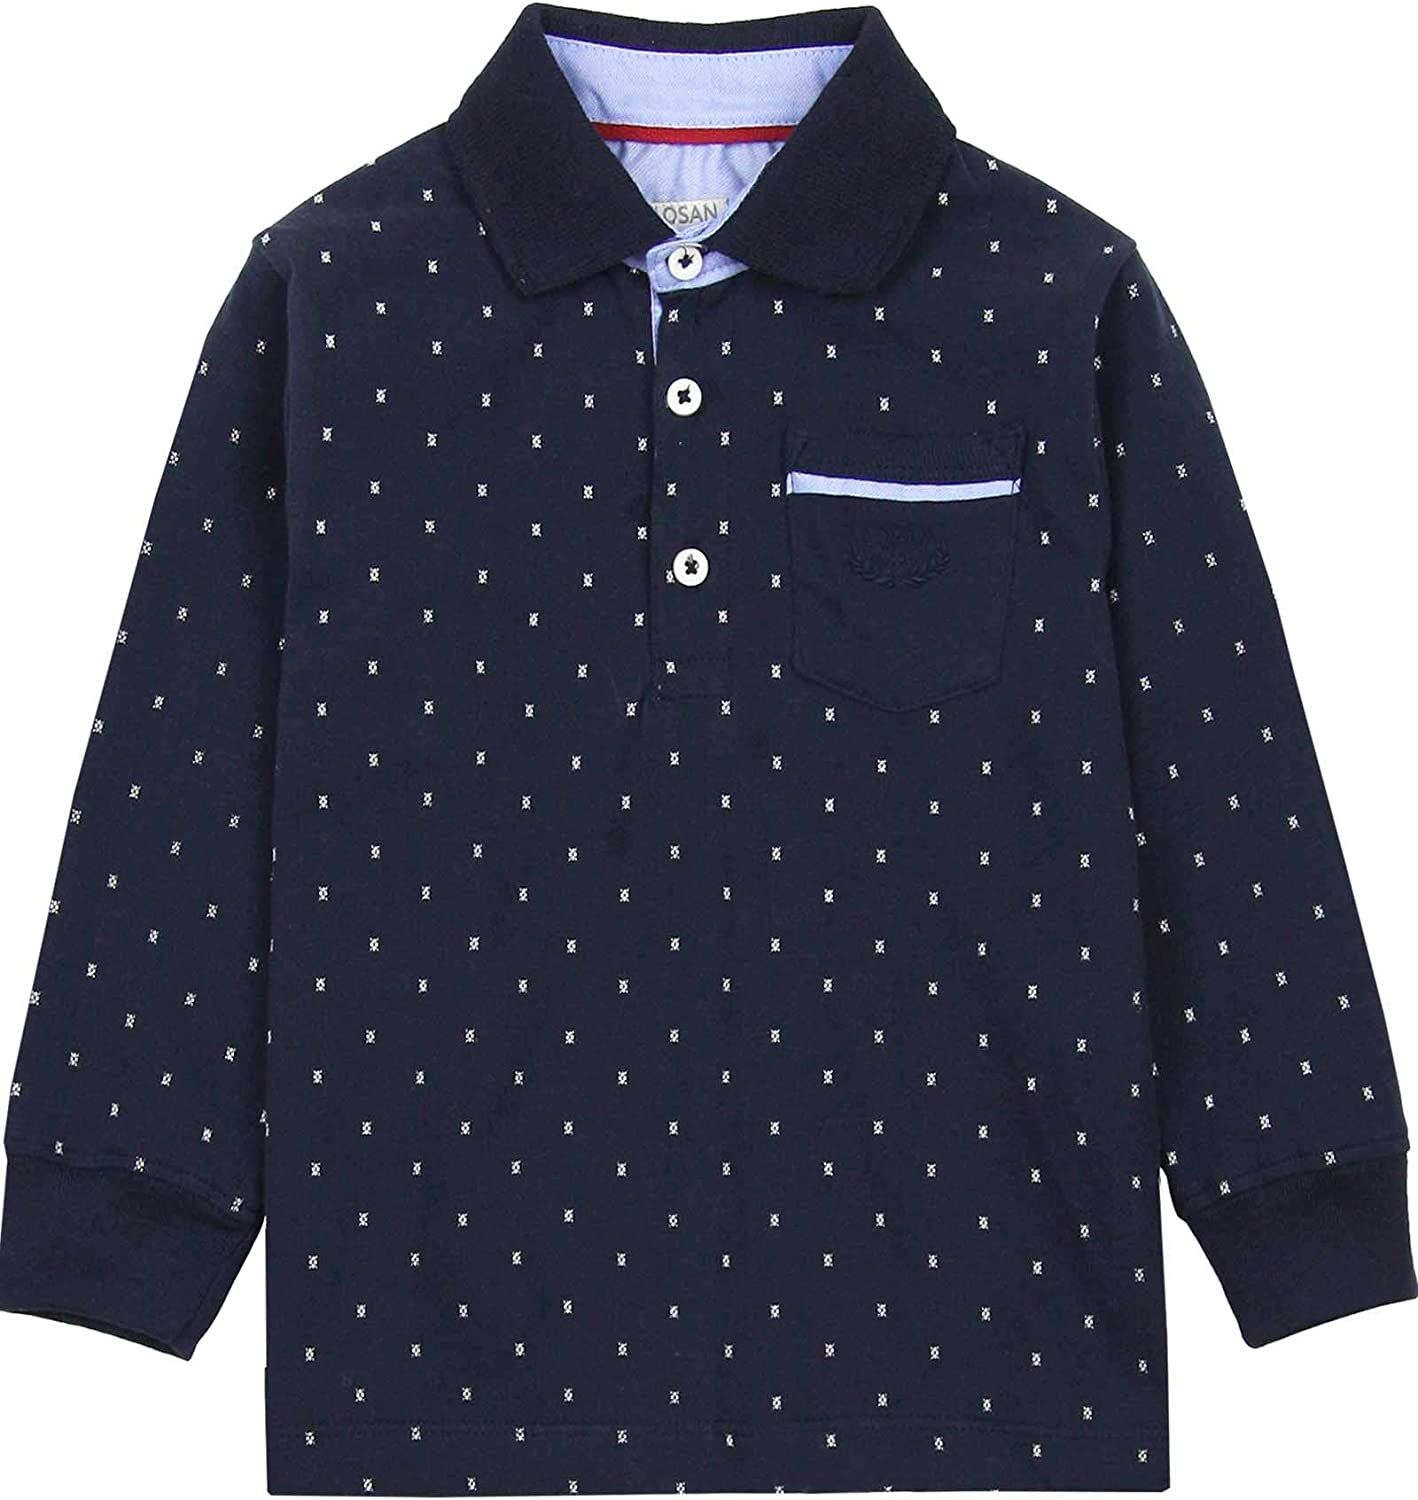 Losan Boy's Polo in All-Over Print, Sizes 2-7